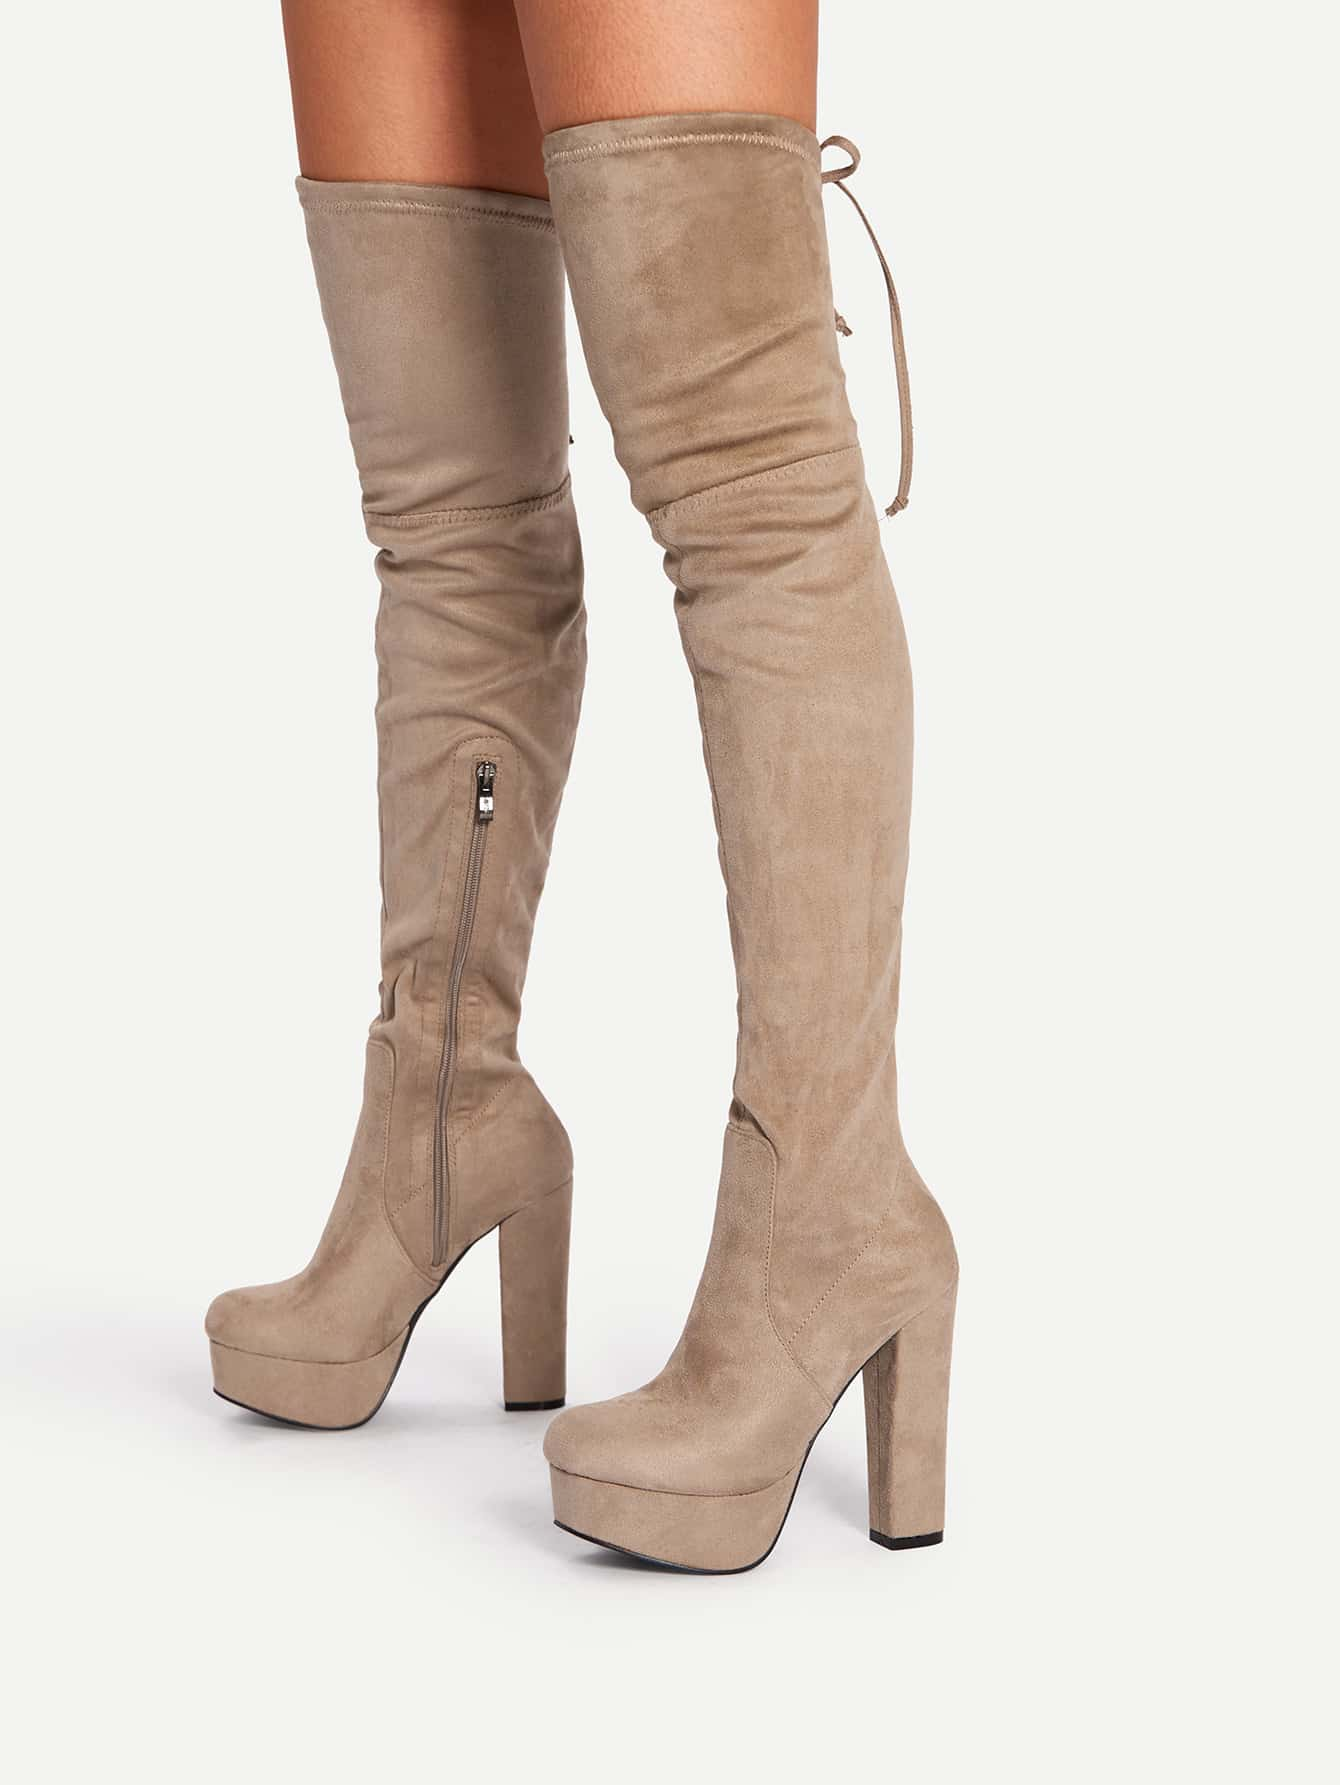 Tie Back Thigh High Heeled Boots 2018 winter thigh high boots women faux suede leather high heels over the knee botas mujer plus size shoes woman 34 43